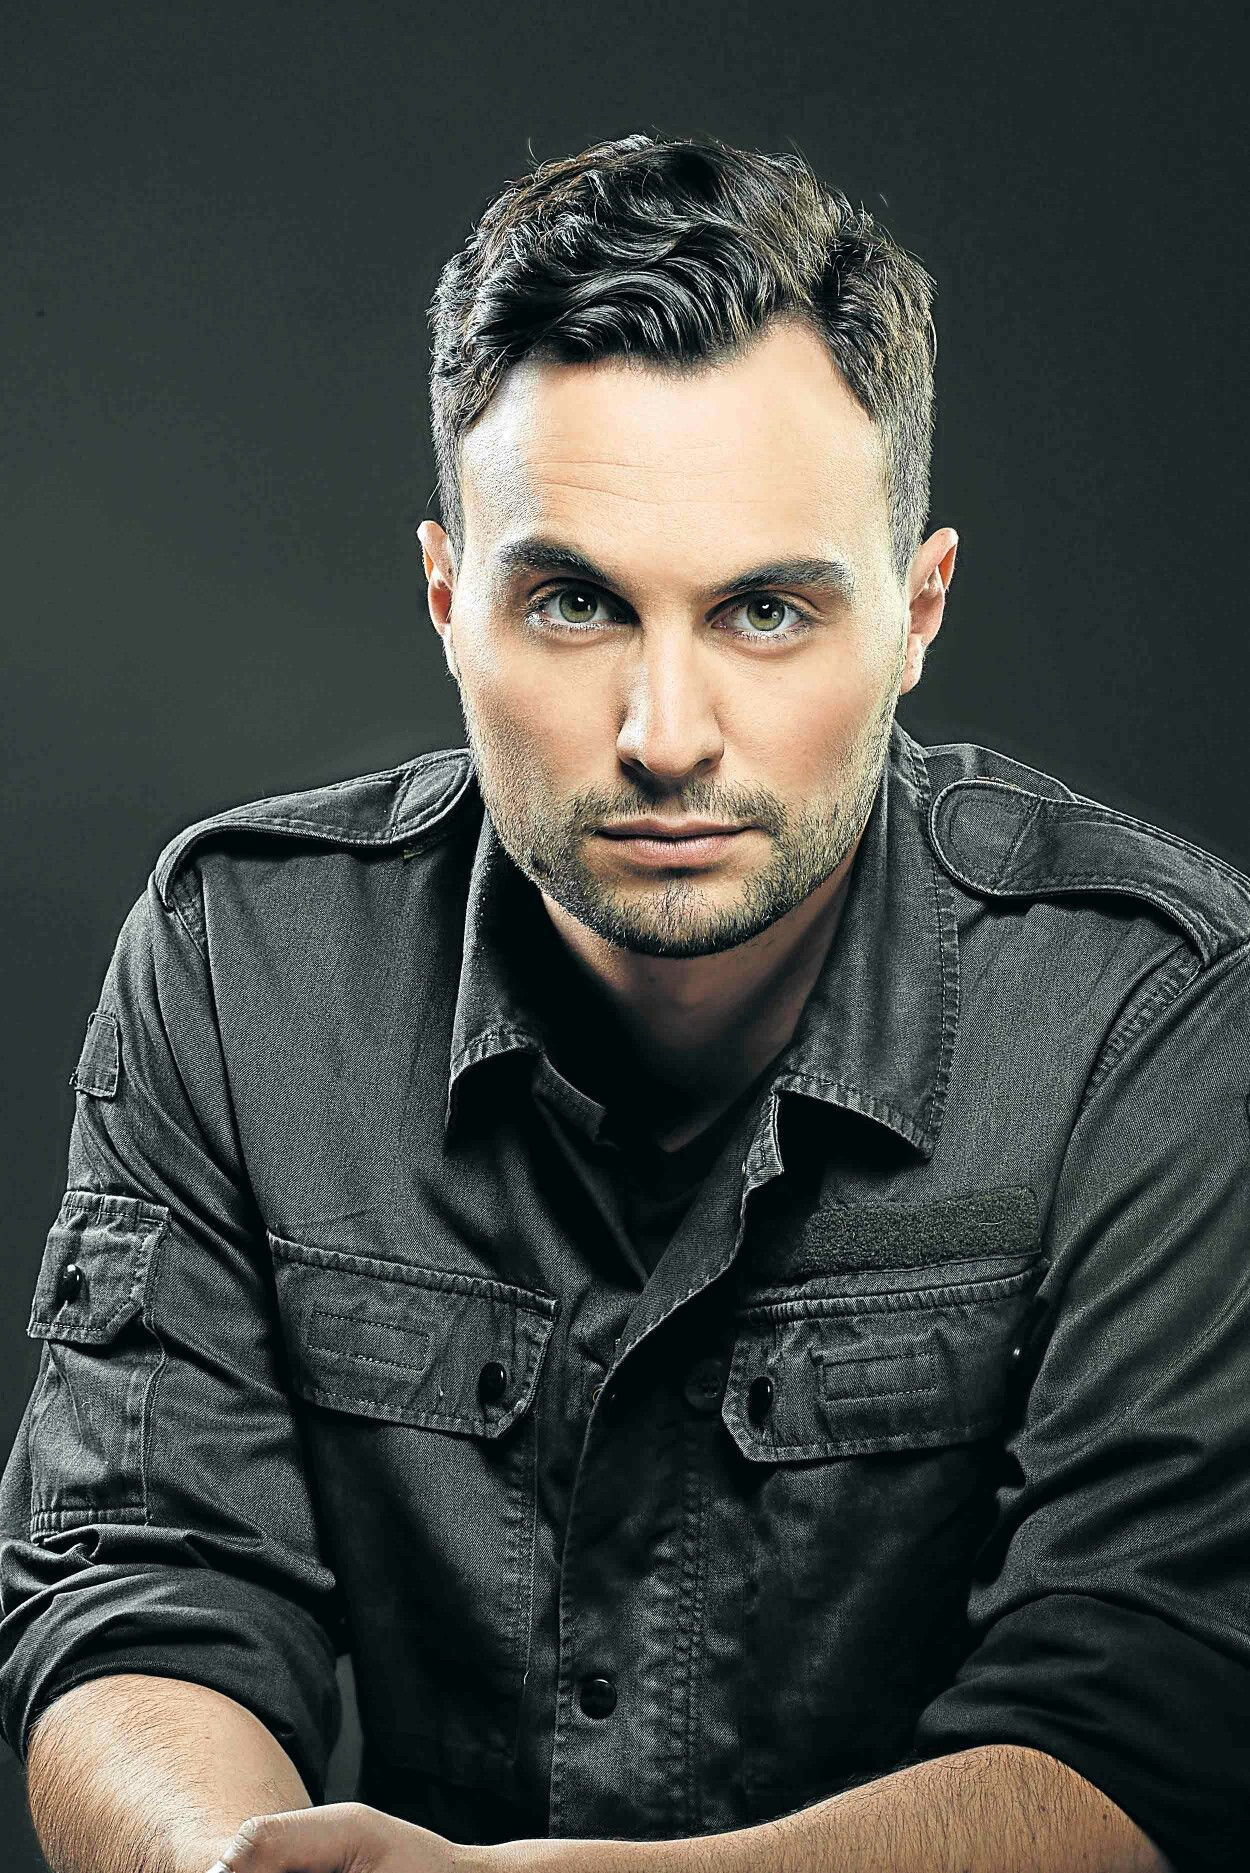 Jesse Clegg (born 1988) is a South African singer-songwriter whose three studio albums, When I Wake Up, his 2011 follow up Life on Mars, and his latest, Things Unseen, have made Clegg a platinum-selling success in his home country.